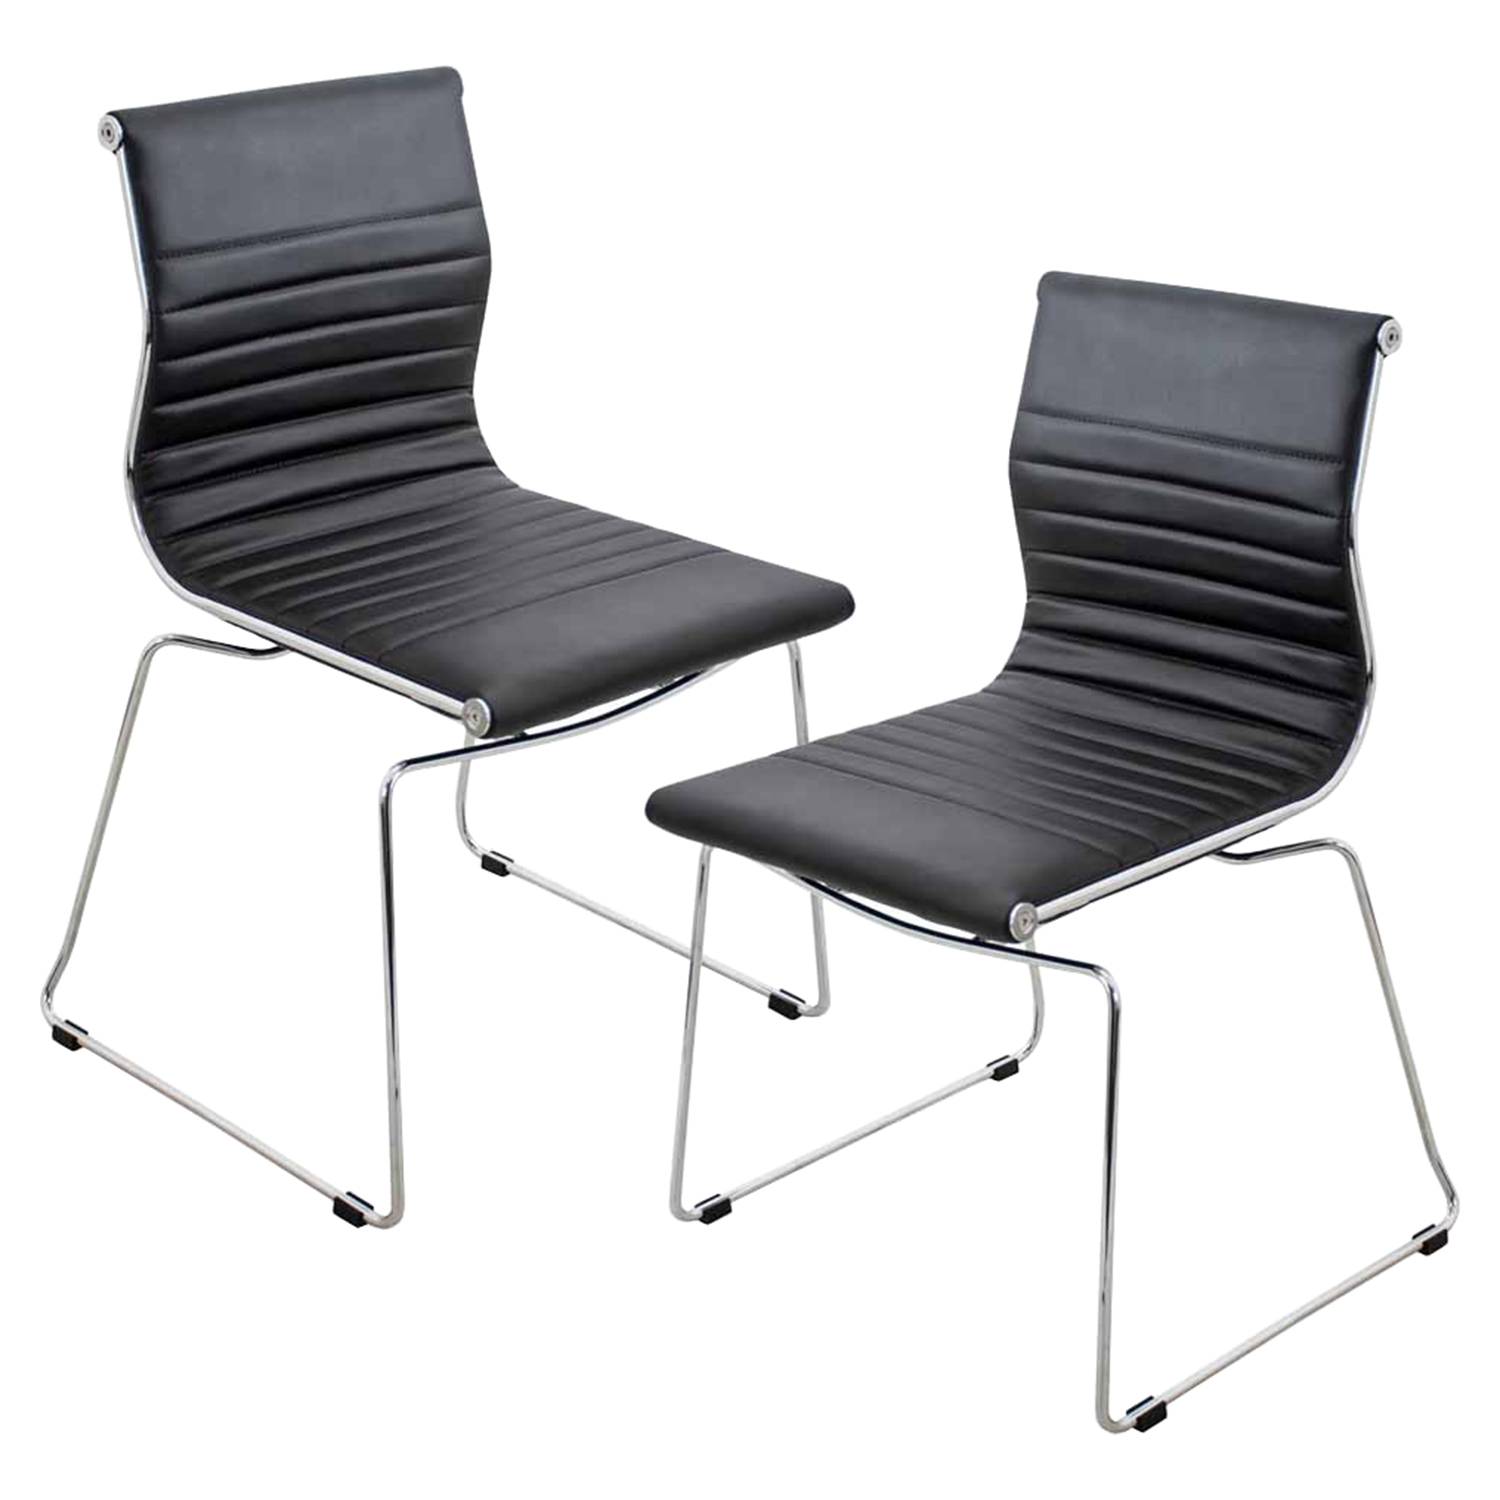 Master Stackable Dining Chair - Black (Set of 2)